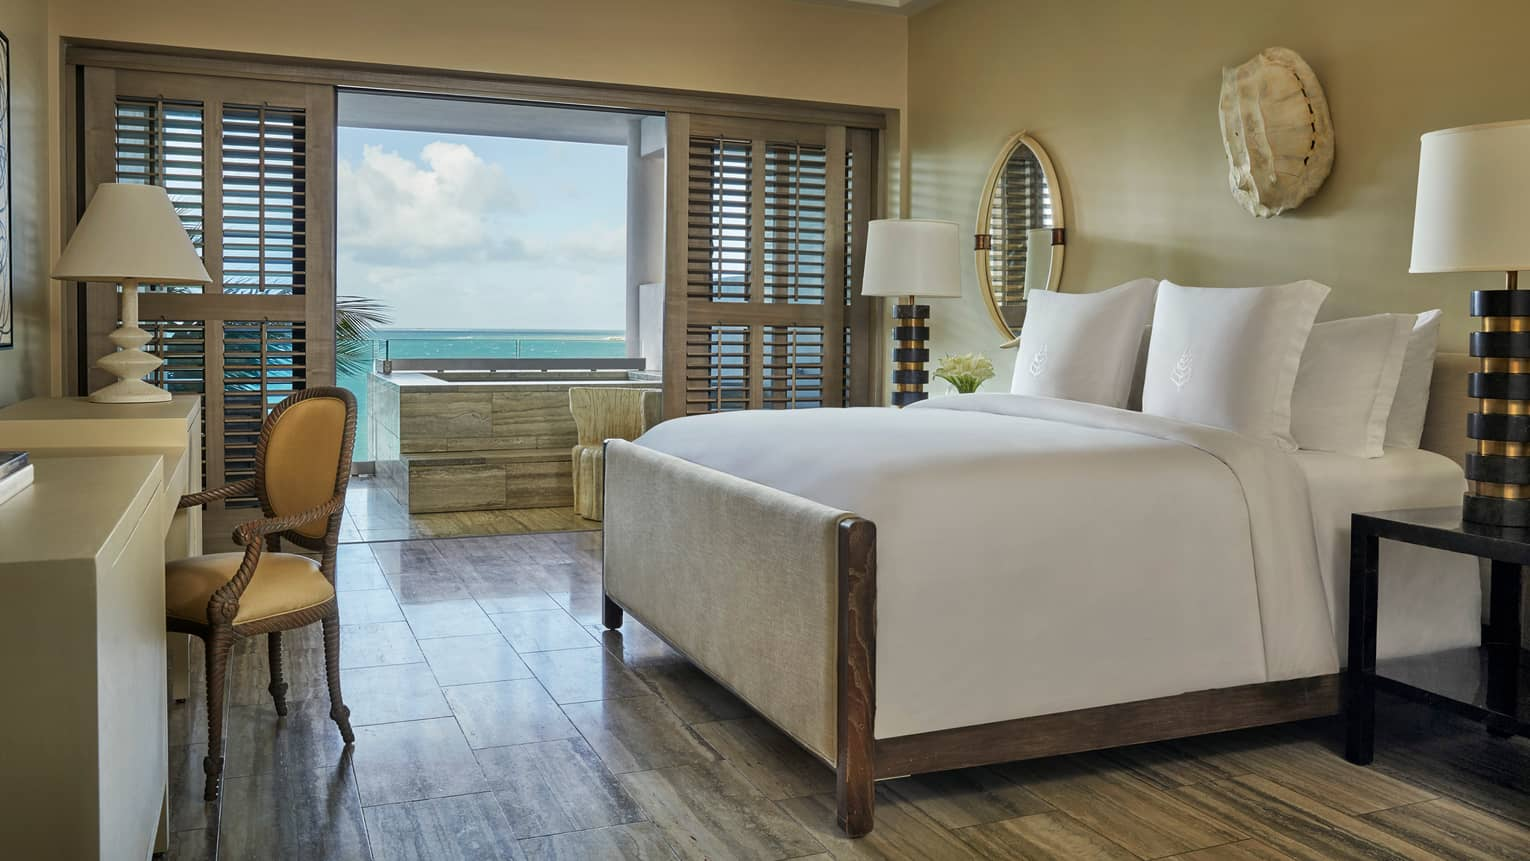 Ocean-View Studio Room bed, desk, bedside lamps, white wall sculpture, patio doors with wood shutters